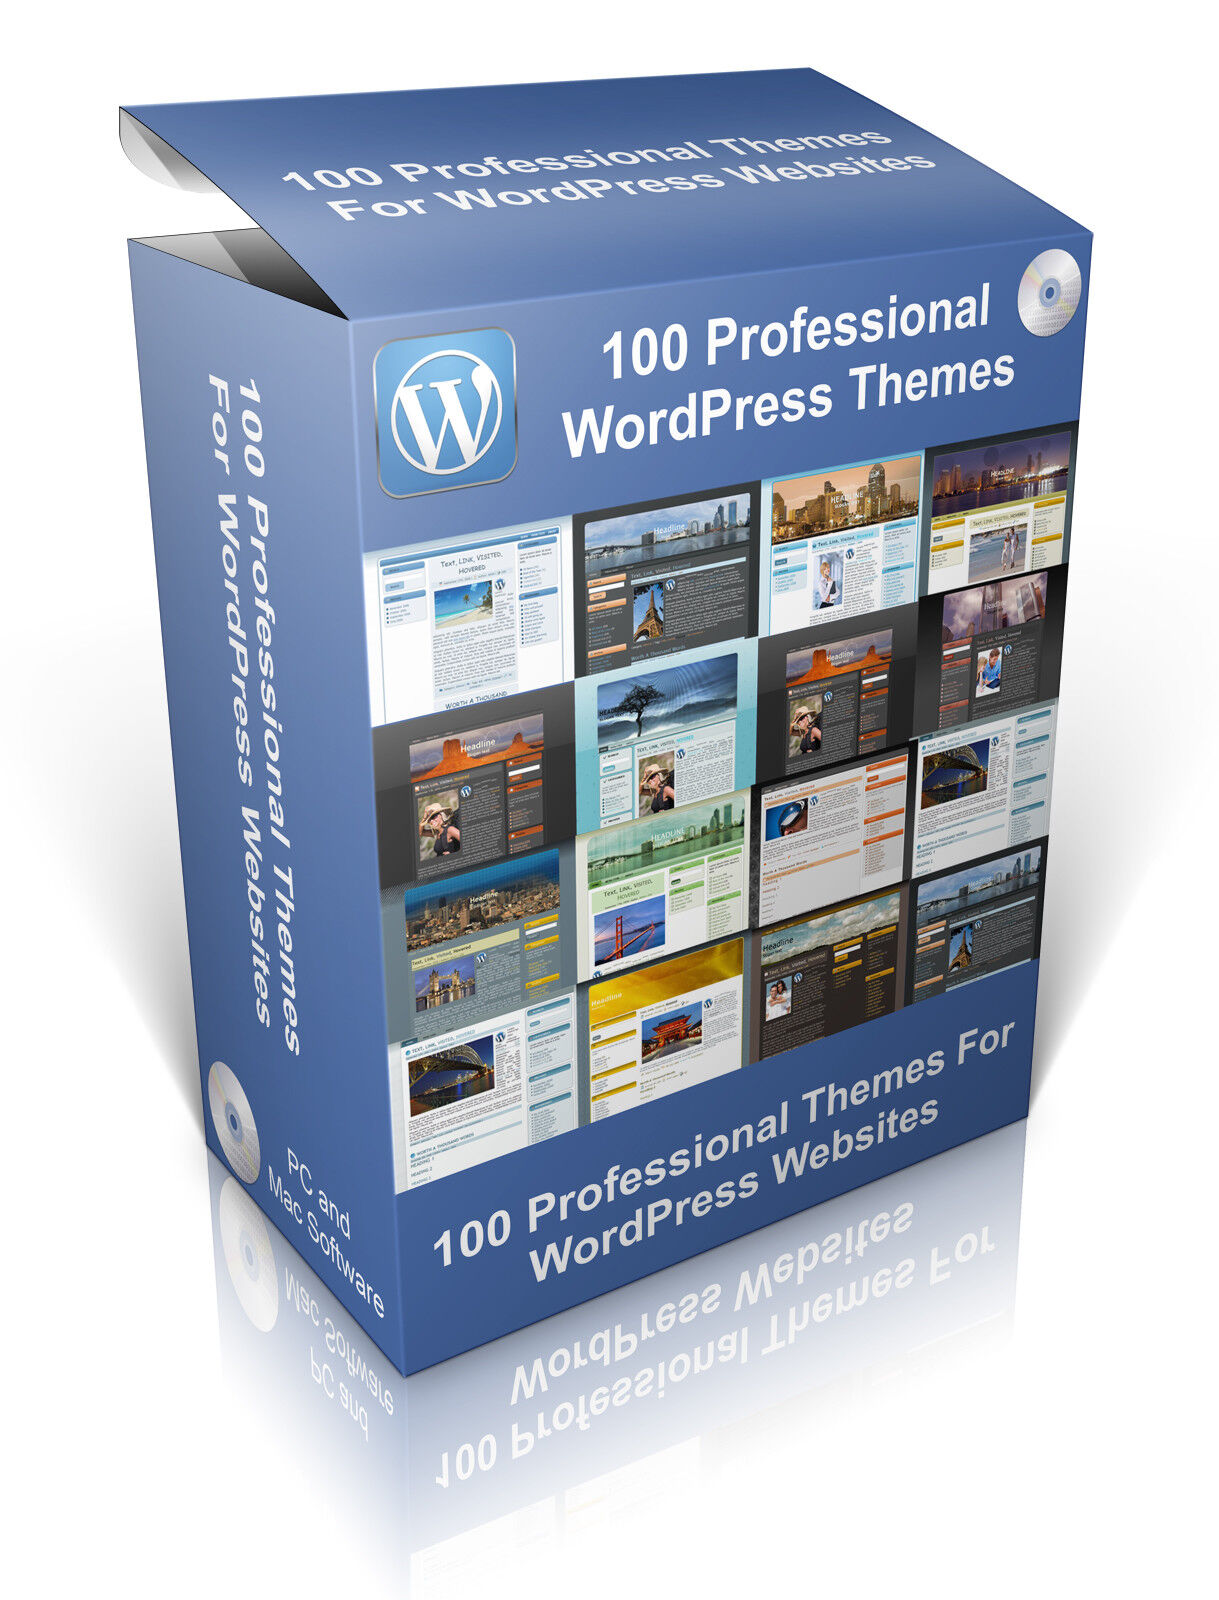 100 Professional Themes For WordPress Websites, Design Your Own websites.